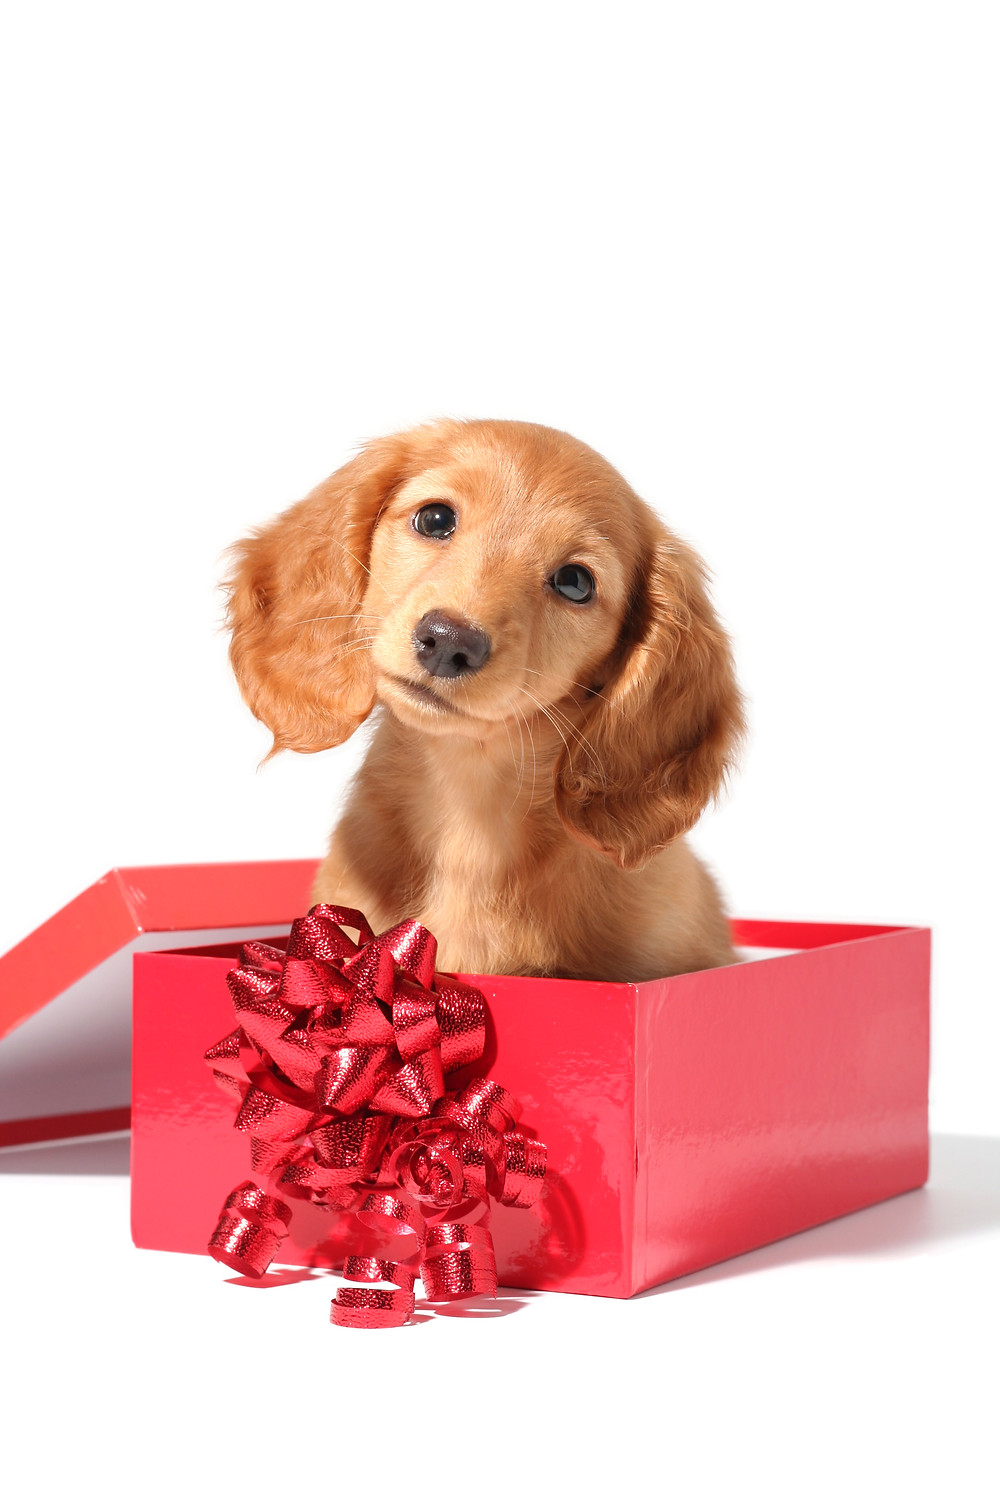 A puppy sitting in a box with a bow: the perfect gift?